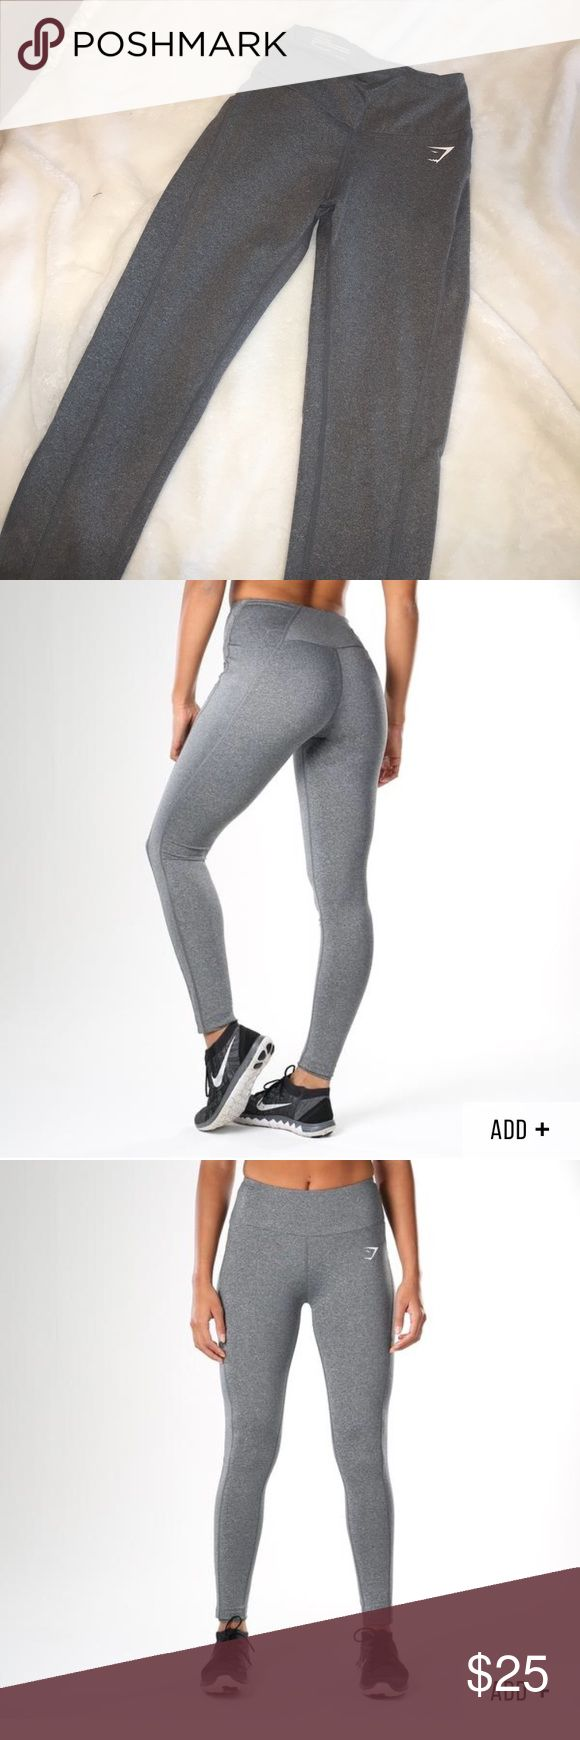 Gymshark Grey Dry Sculpture Leggings XS Absolutely love these however they are much too small for me now. I am roughly a size 1 or 3 in jeans and these are too tight for me to pull up now. Only worn a few times, like brand new condition! (2&3 pic is from gymshark website) I do not reply to comments regarding trades, offers, or creating bundles. Please use offer button or create your own bundles. Gymshark Pants Leggings